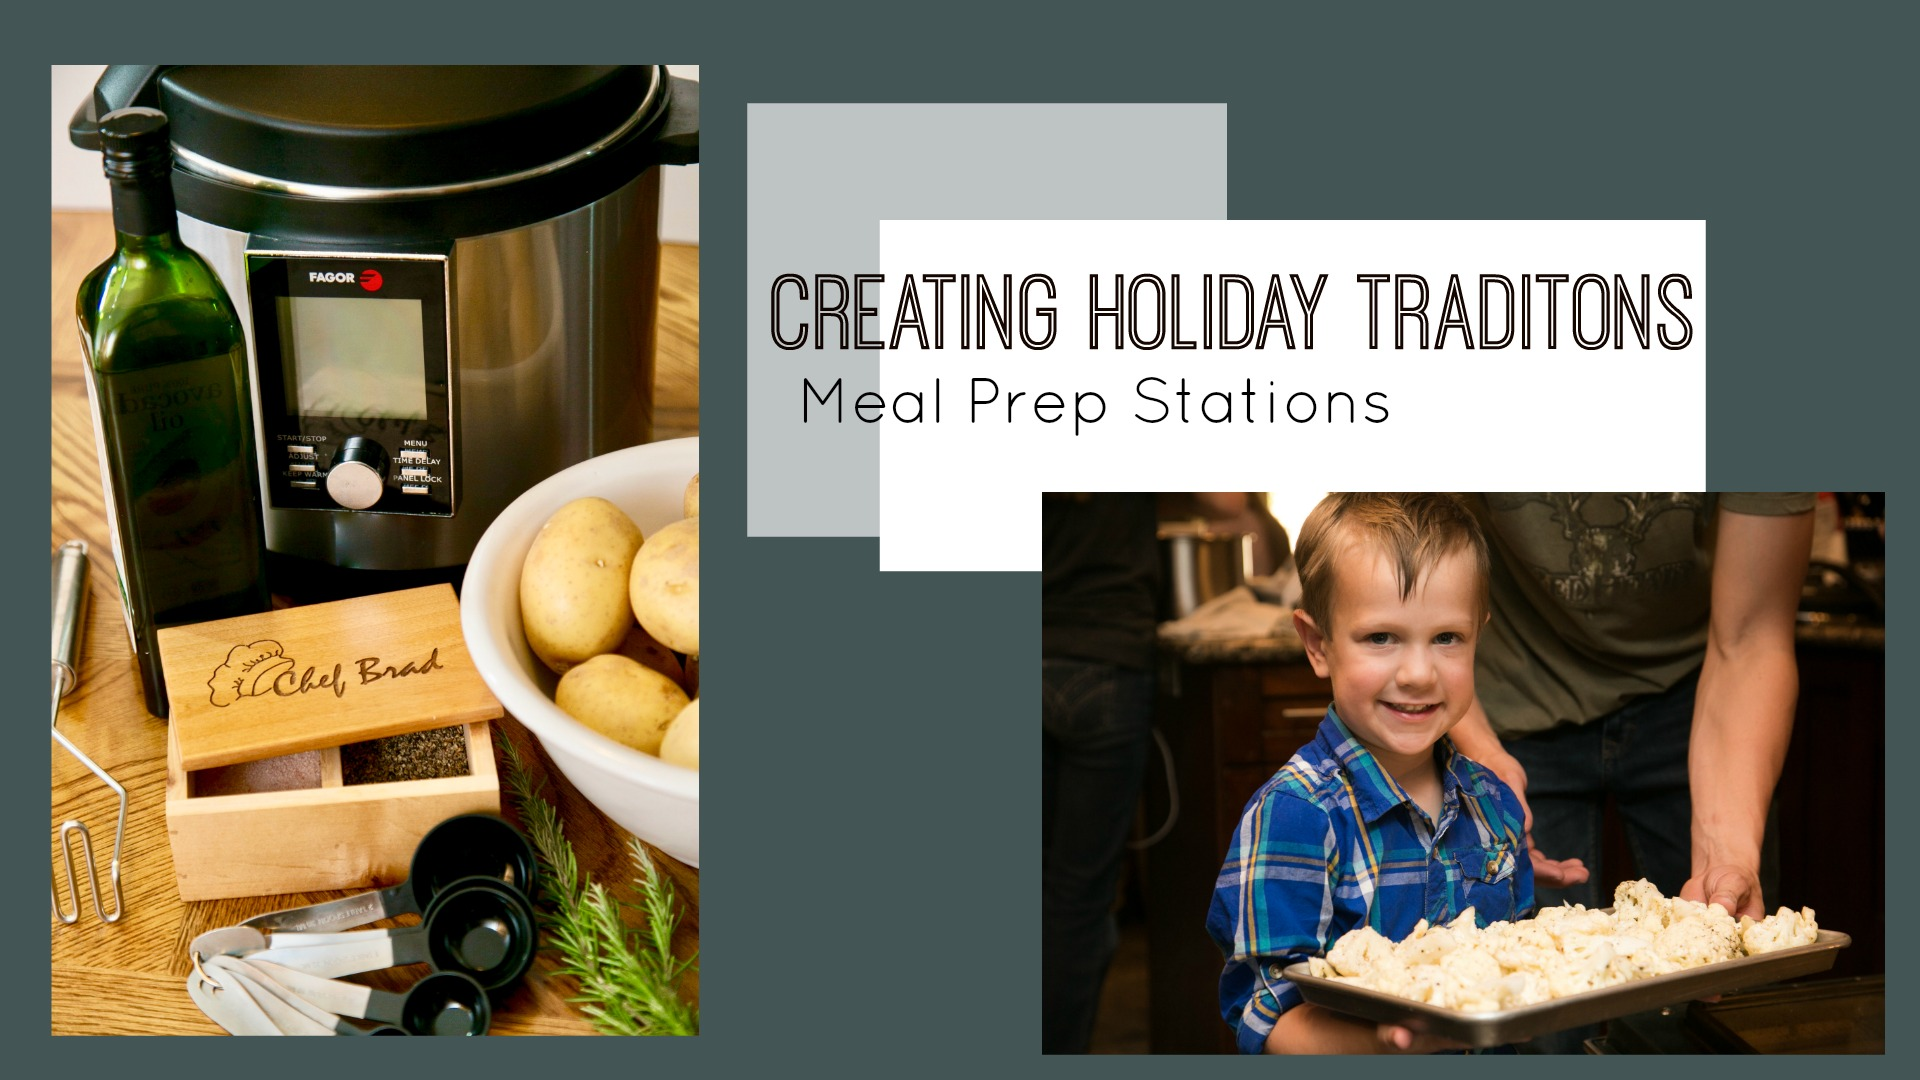 Creating Holiday Traditions: Meal Prep Stations